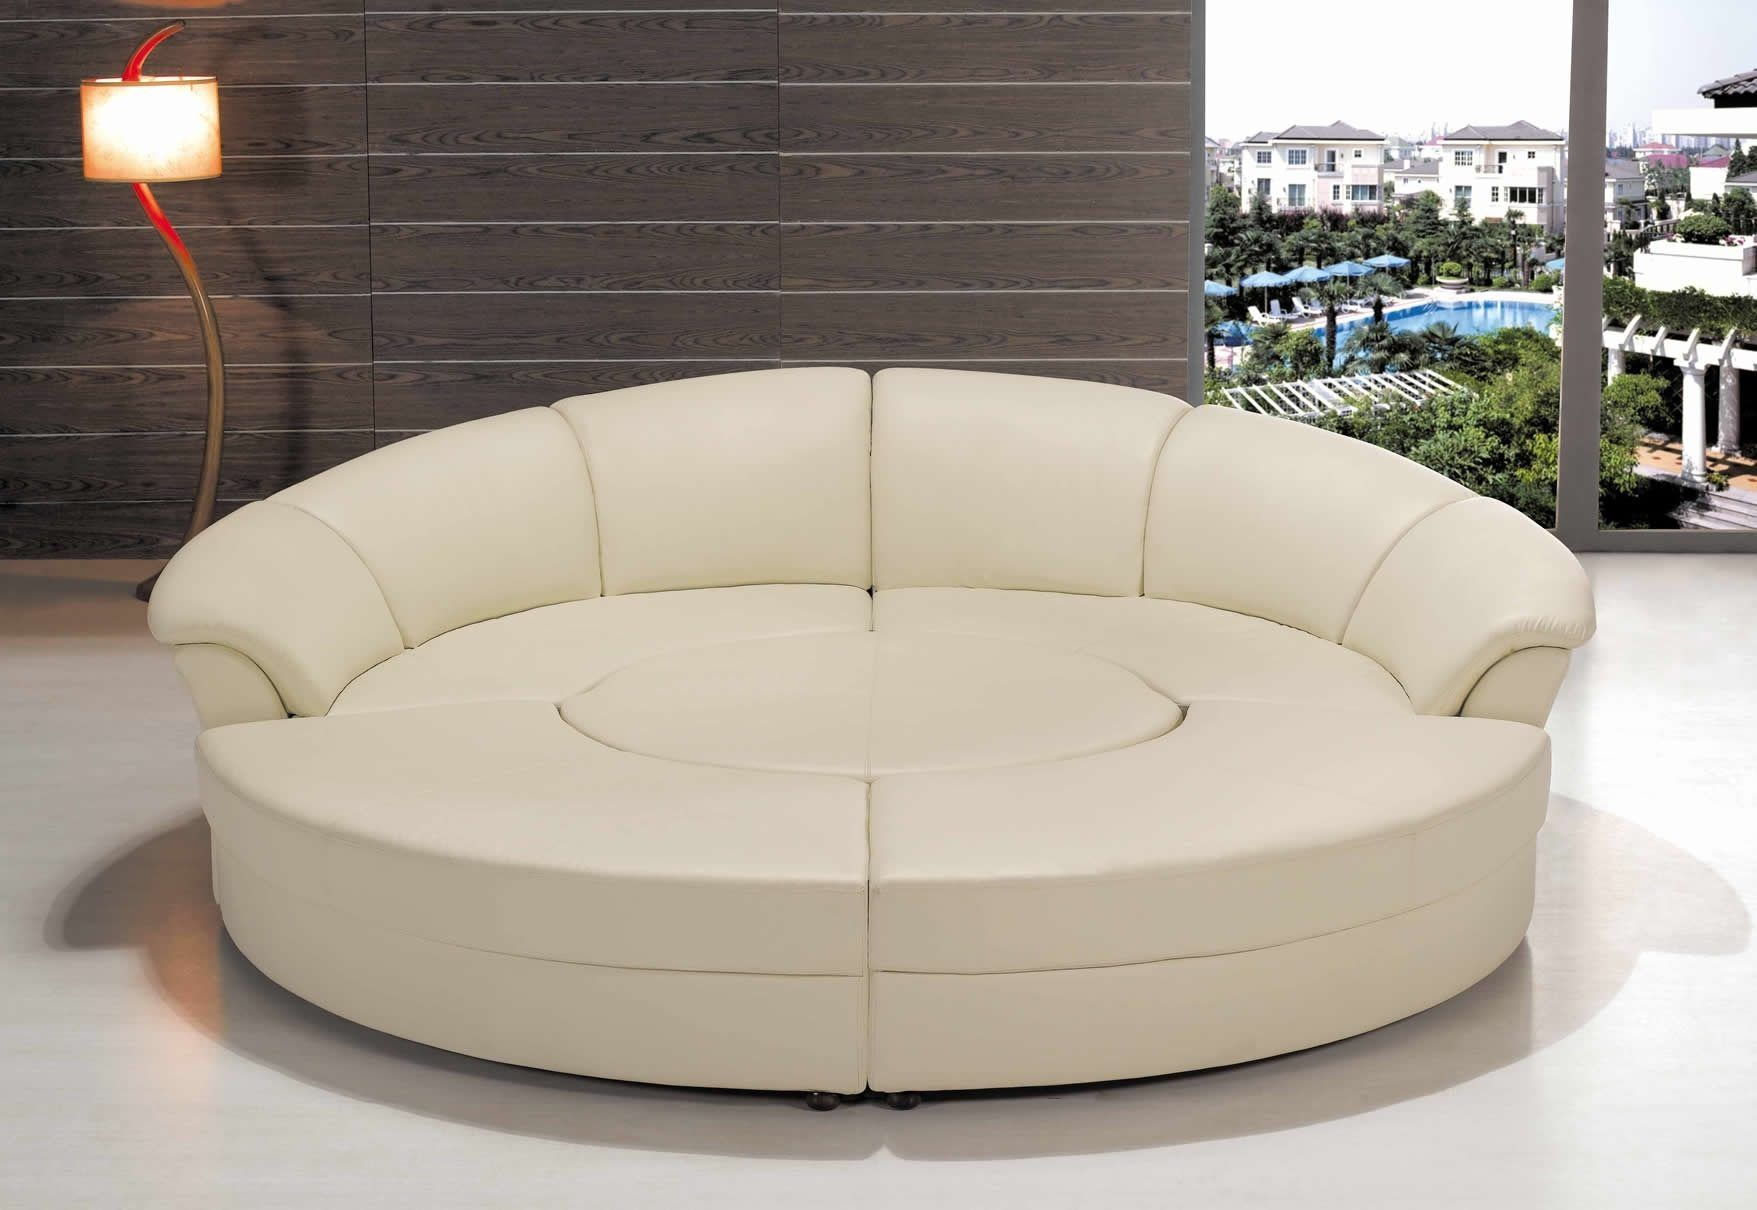 beautiful couch and sofa set decoration-Best Of Couch and sofa Set Image